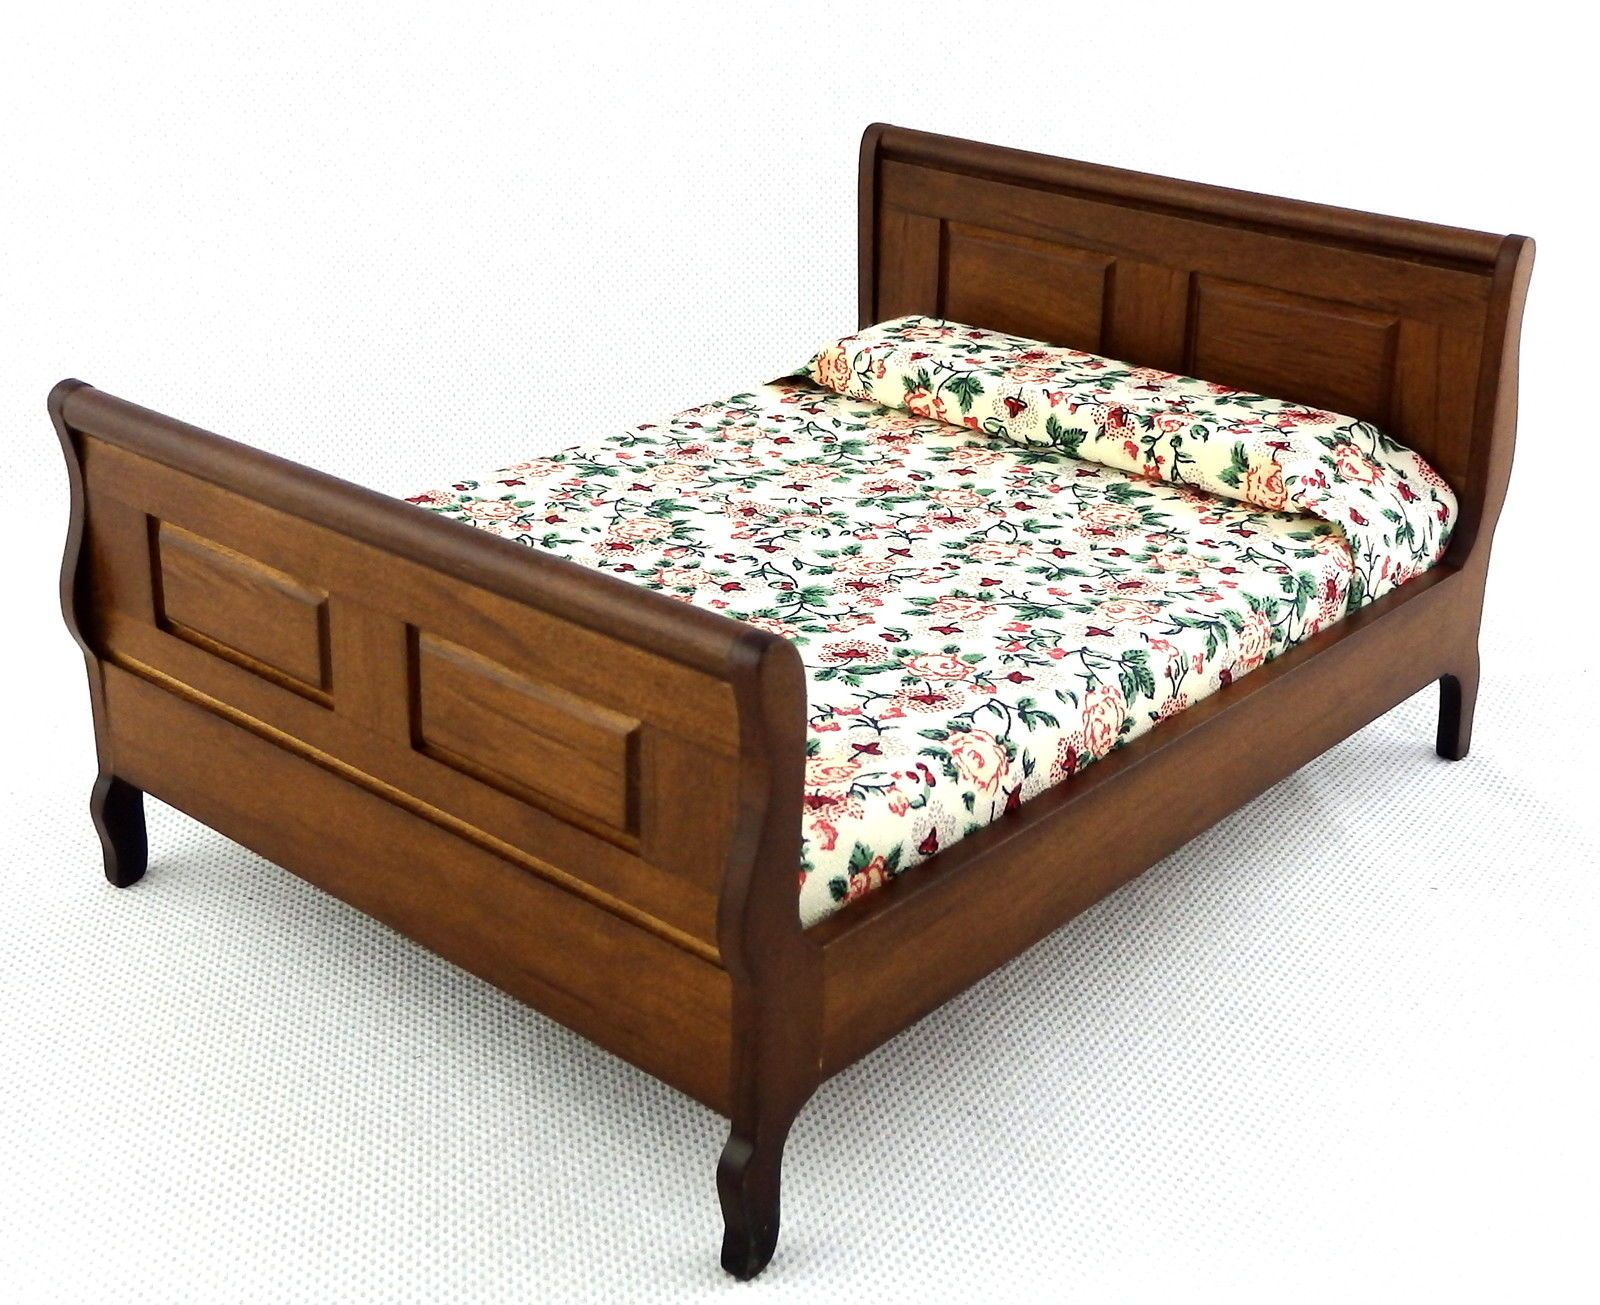 Details about dolls house dark oak double sleigh bed miniature